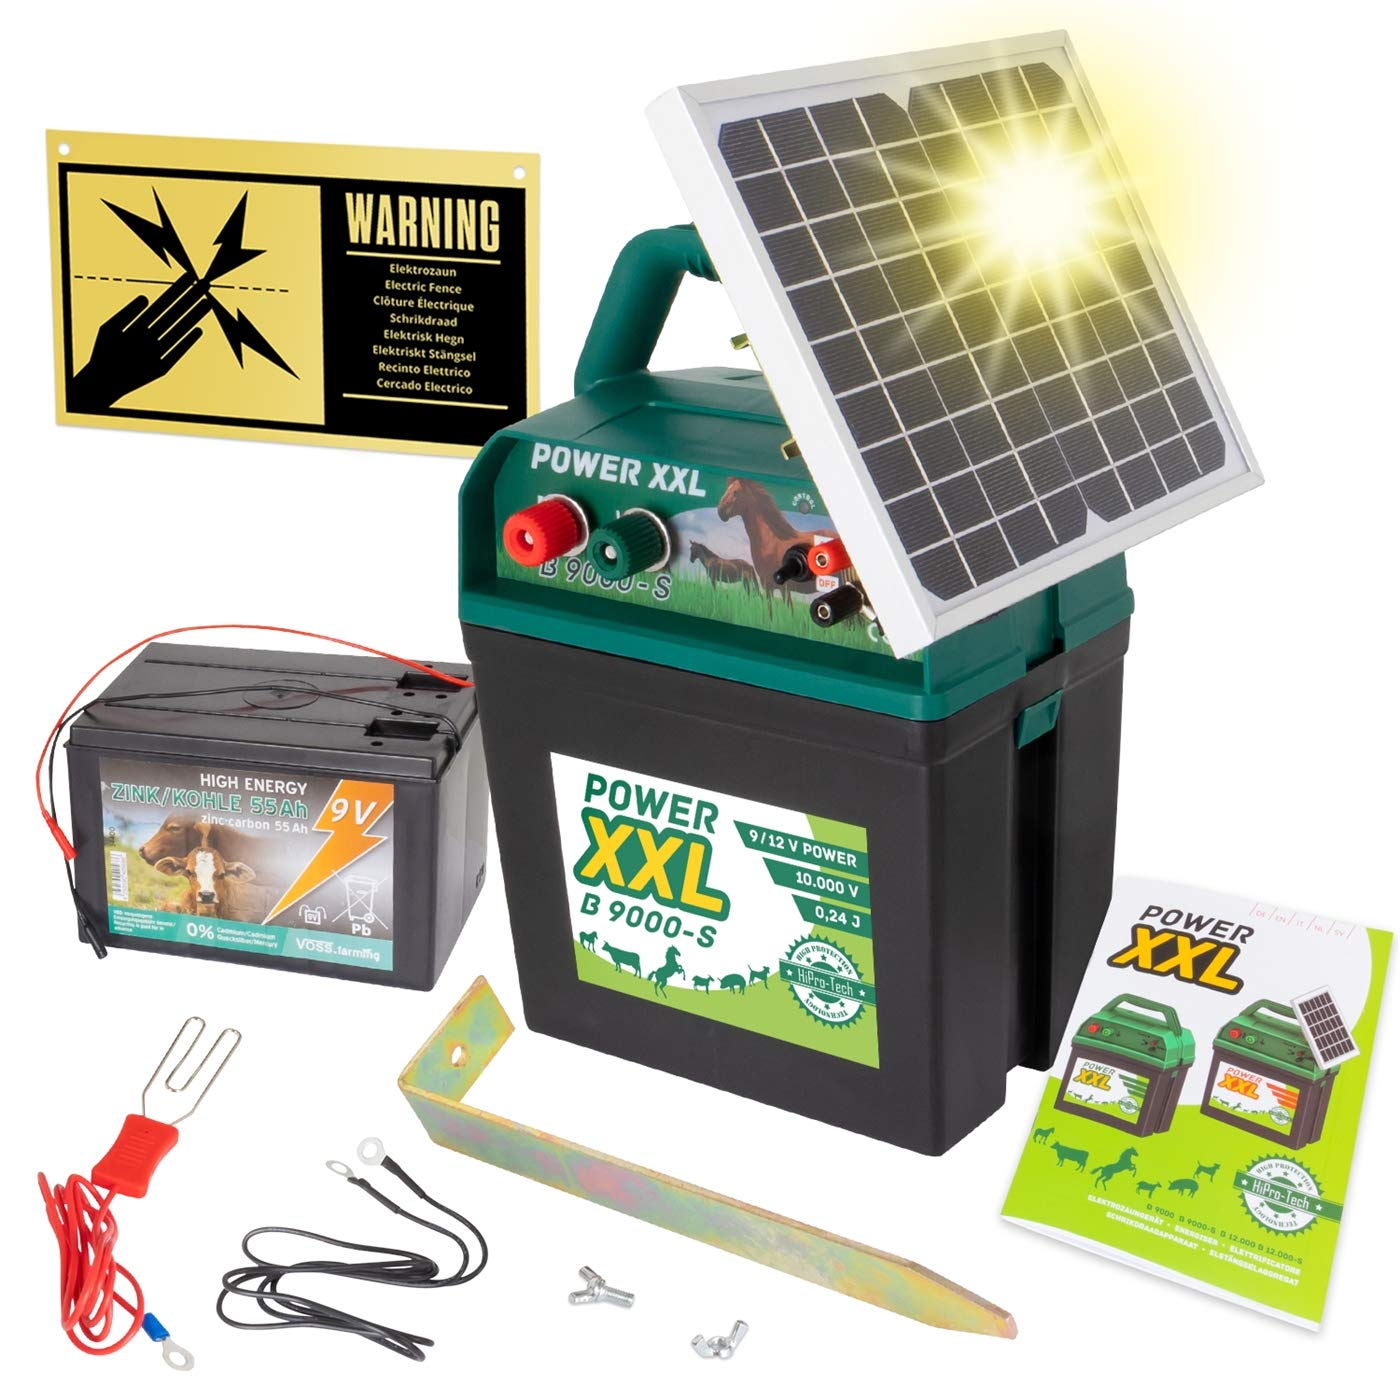 for Energisers VOSS.farming Electric Fence 9V Battery ZINC-CARBON 55Ah